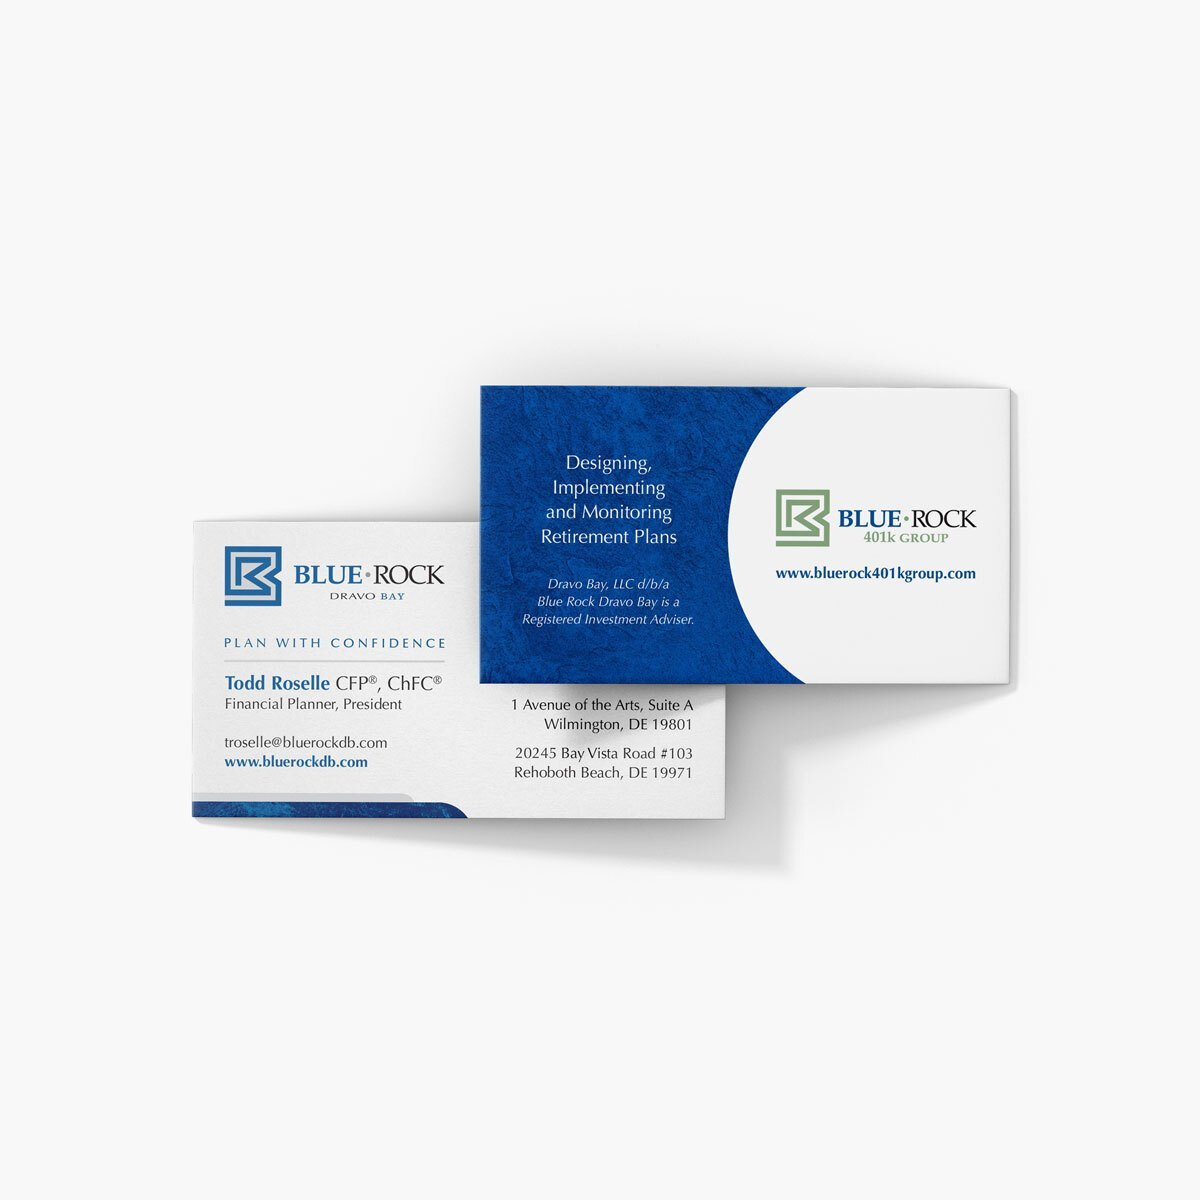 Blue Rock Dravo Bay Business Cards Design by BrandSwan, a graphic design company